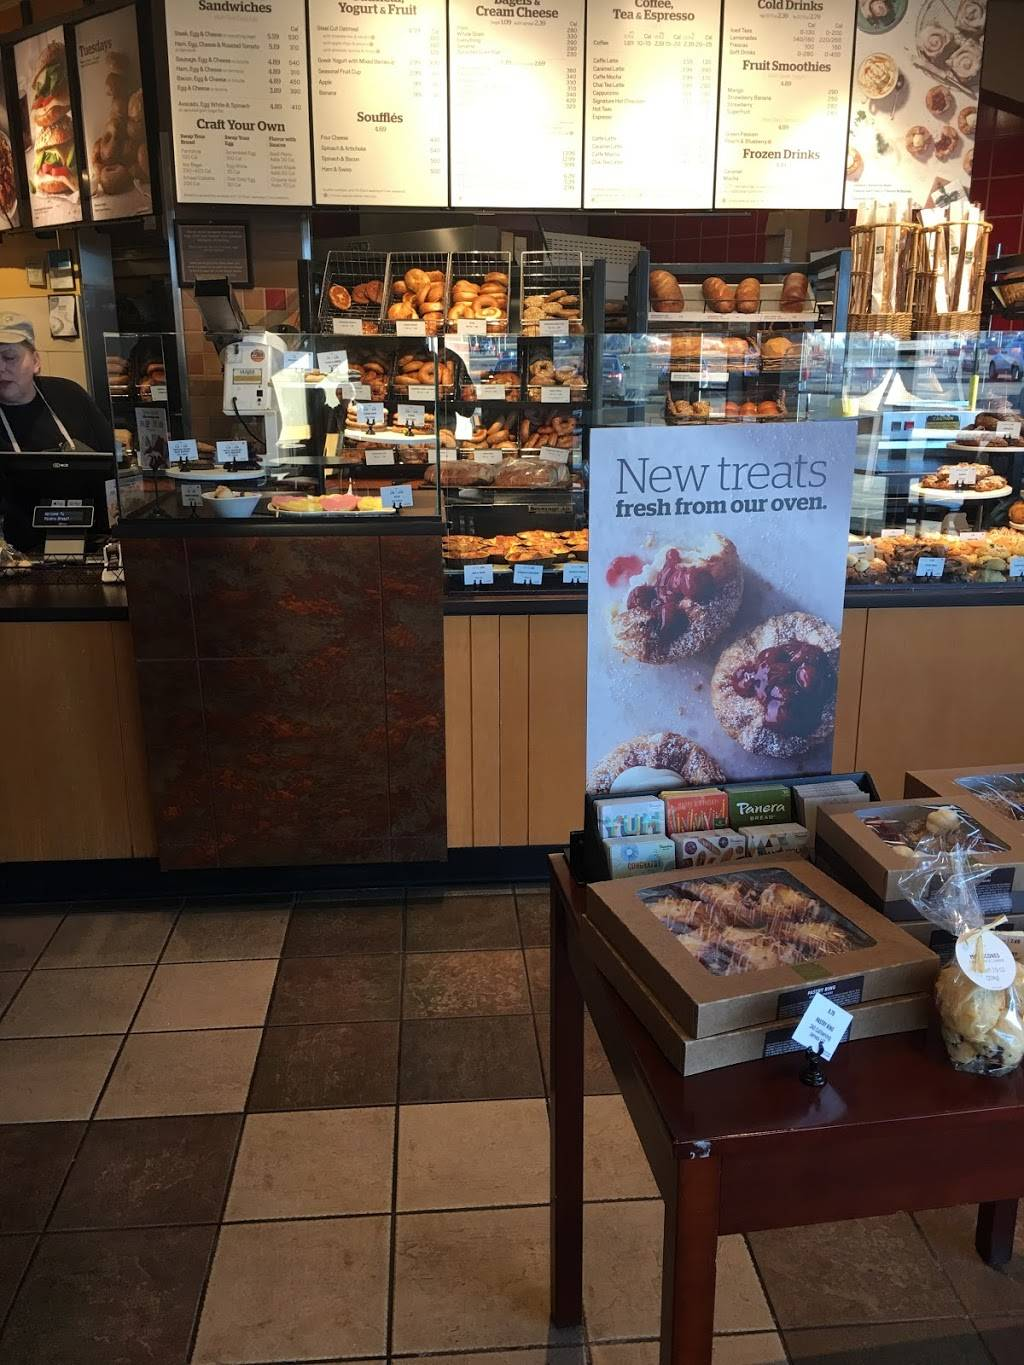 Panera Bread | bakery | 5630 Washington Ave, Racine, WI 53406, USA | 2626347777 OR +1 262-634-7777